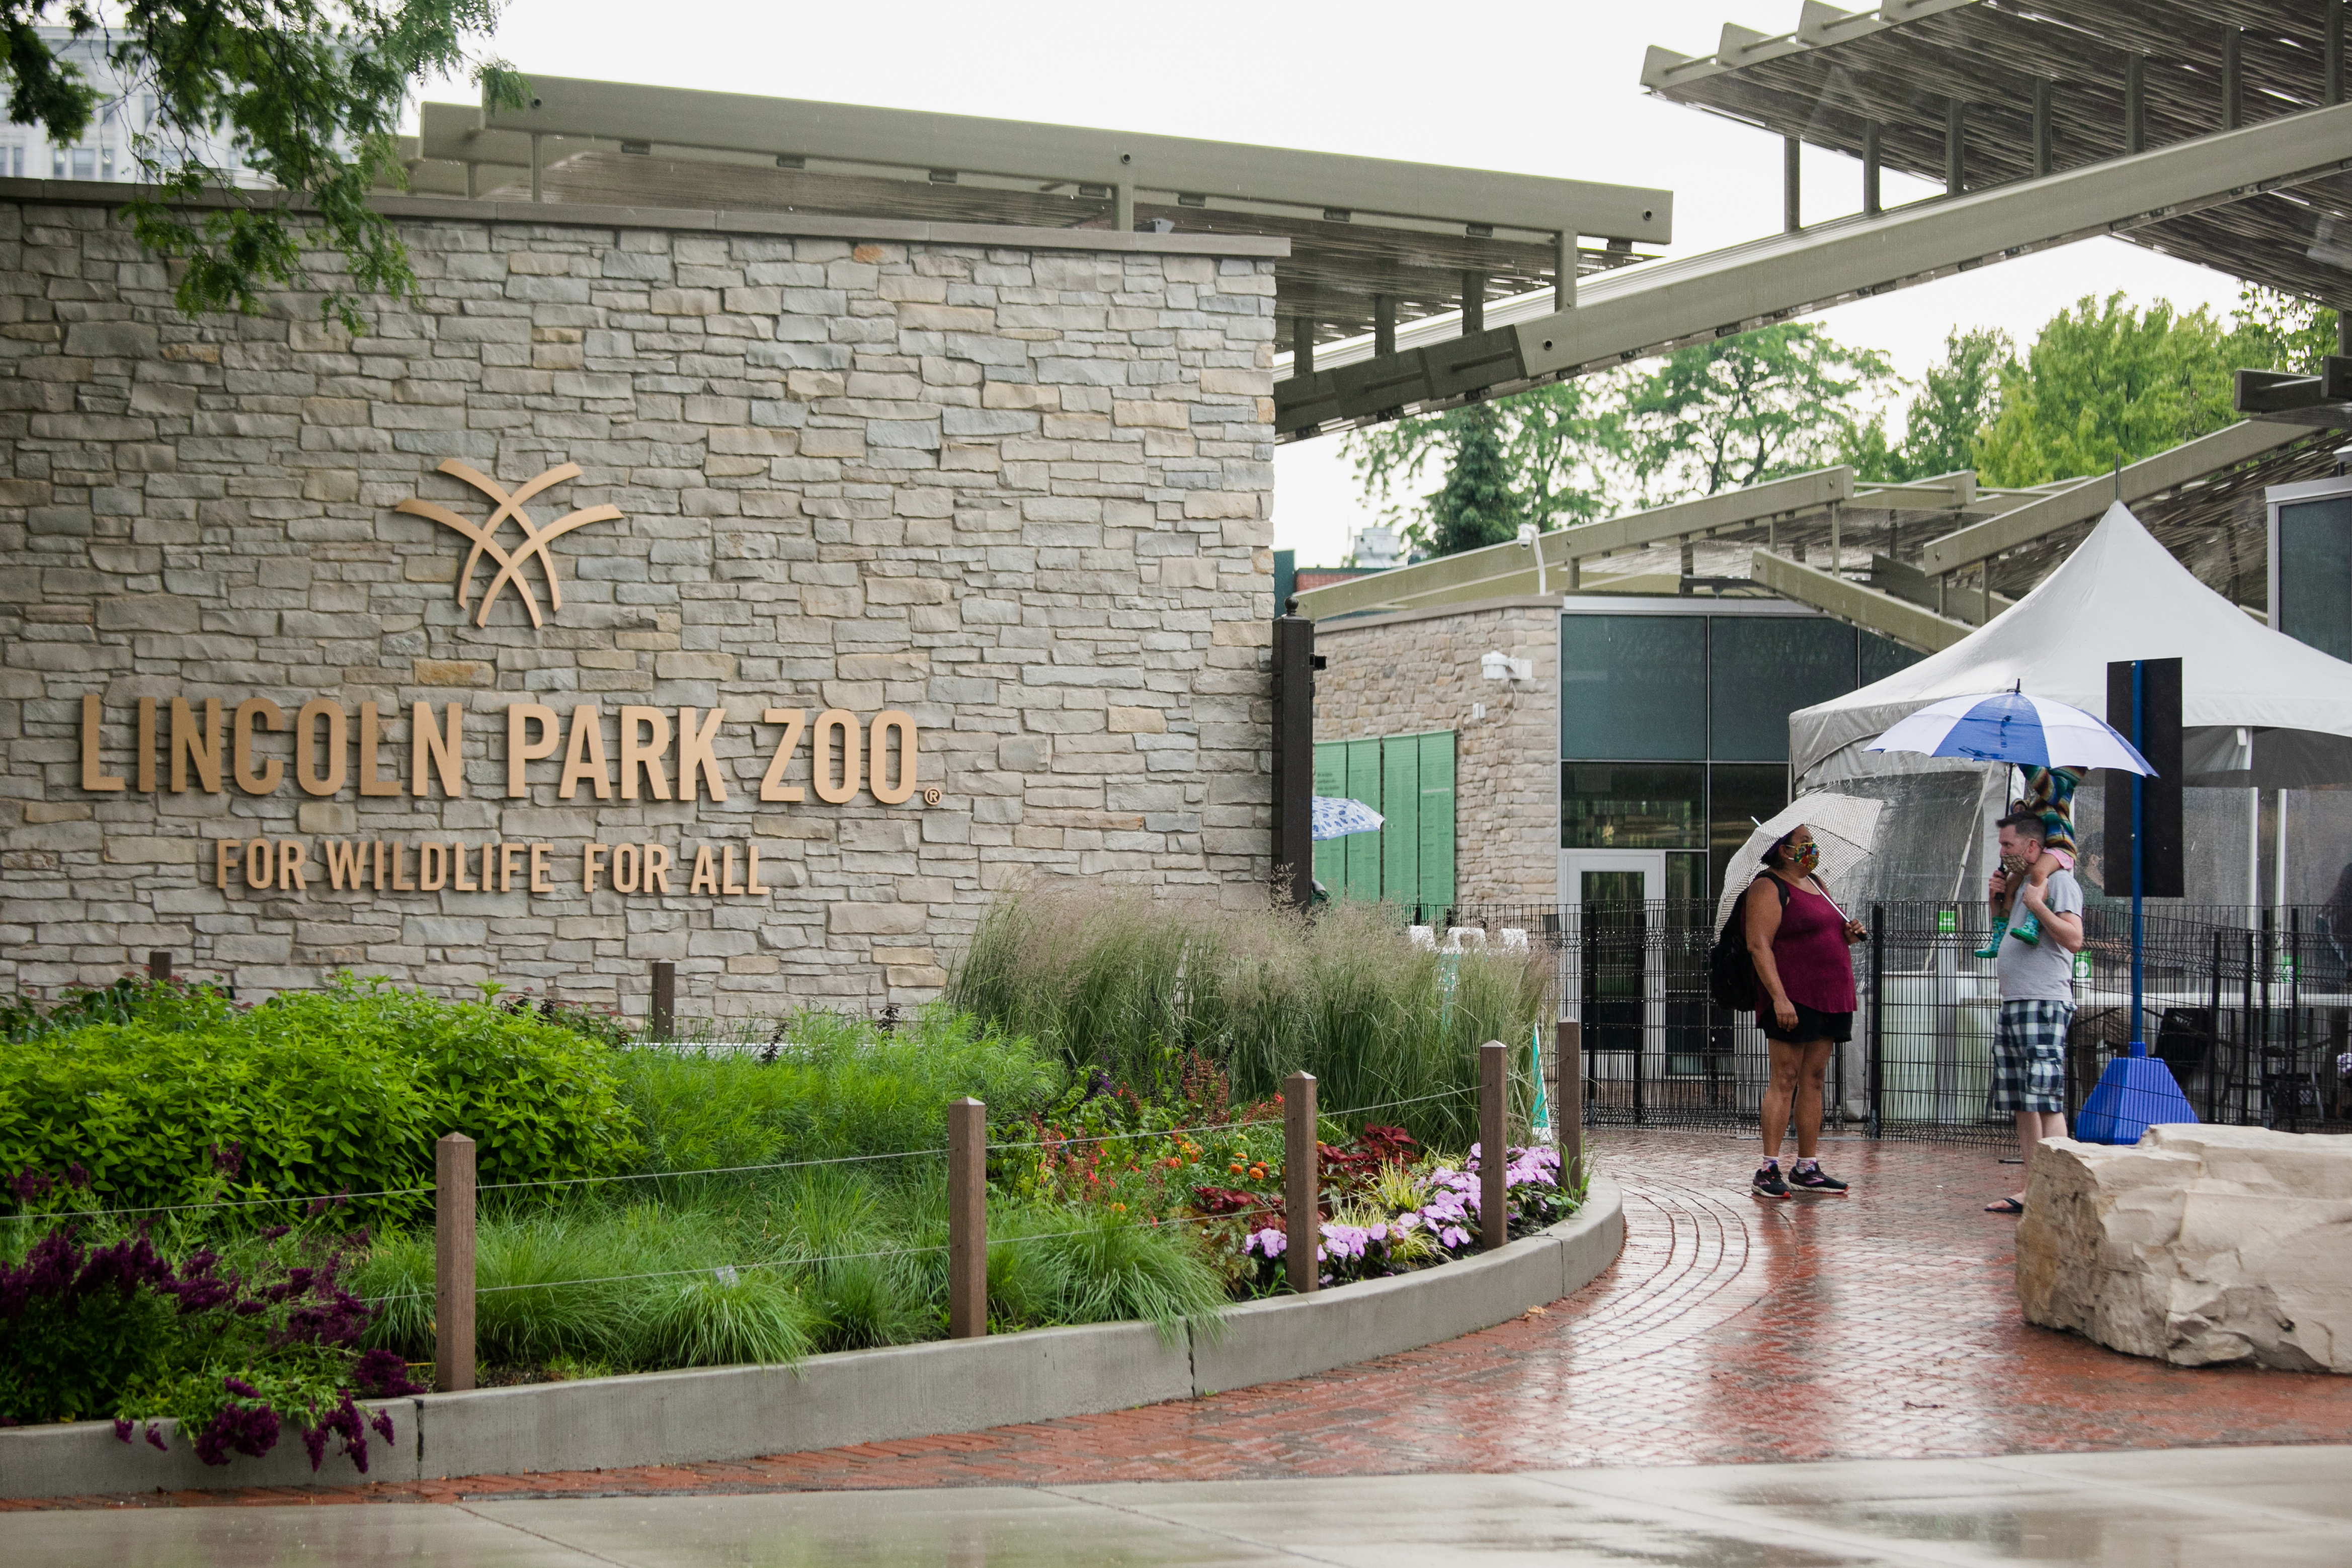 Guests of the Lincoln Park Zoo will be able to see lions and other big cats for the first time in nearly two years beginning Oct. 14.